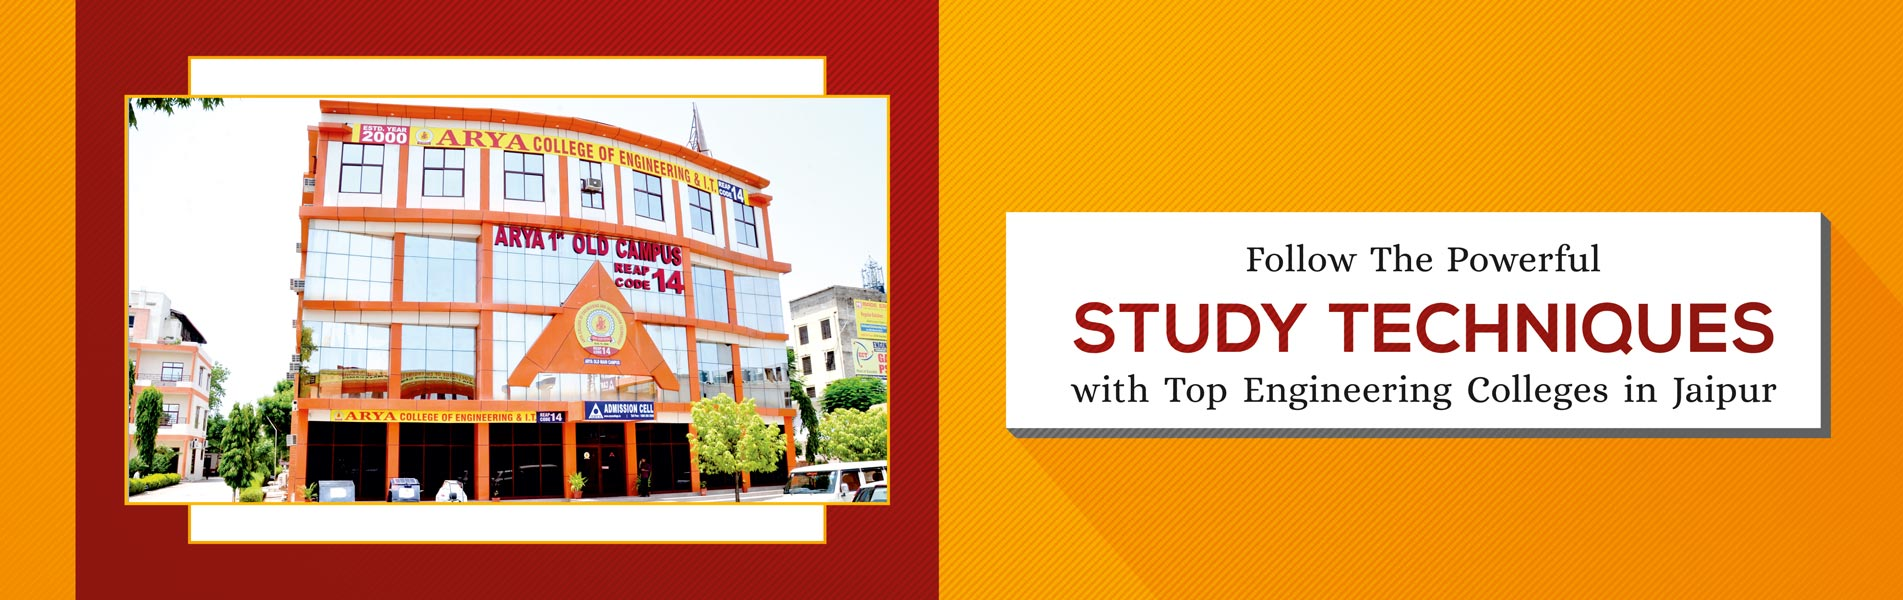 Follow-The-Powerful-Study-Techniques-with-Top-Engineering-colleges-in-Jaipur